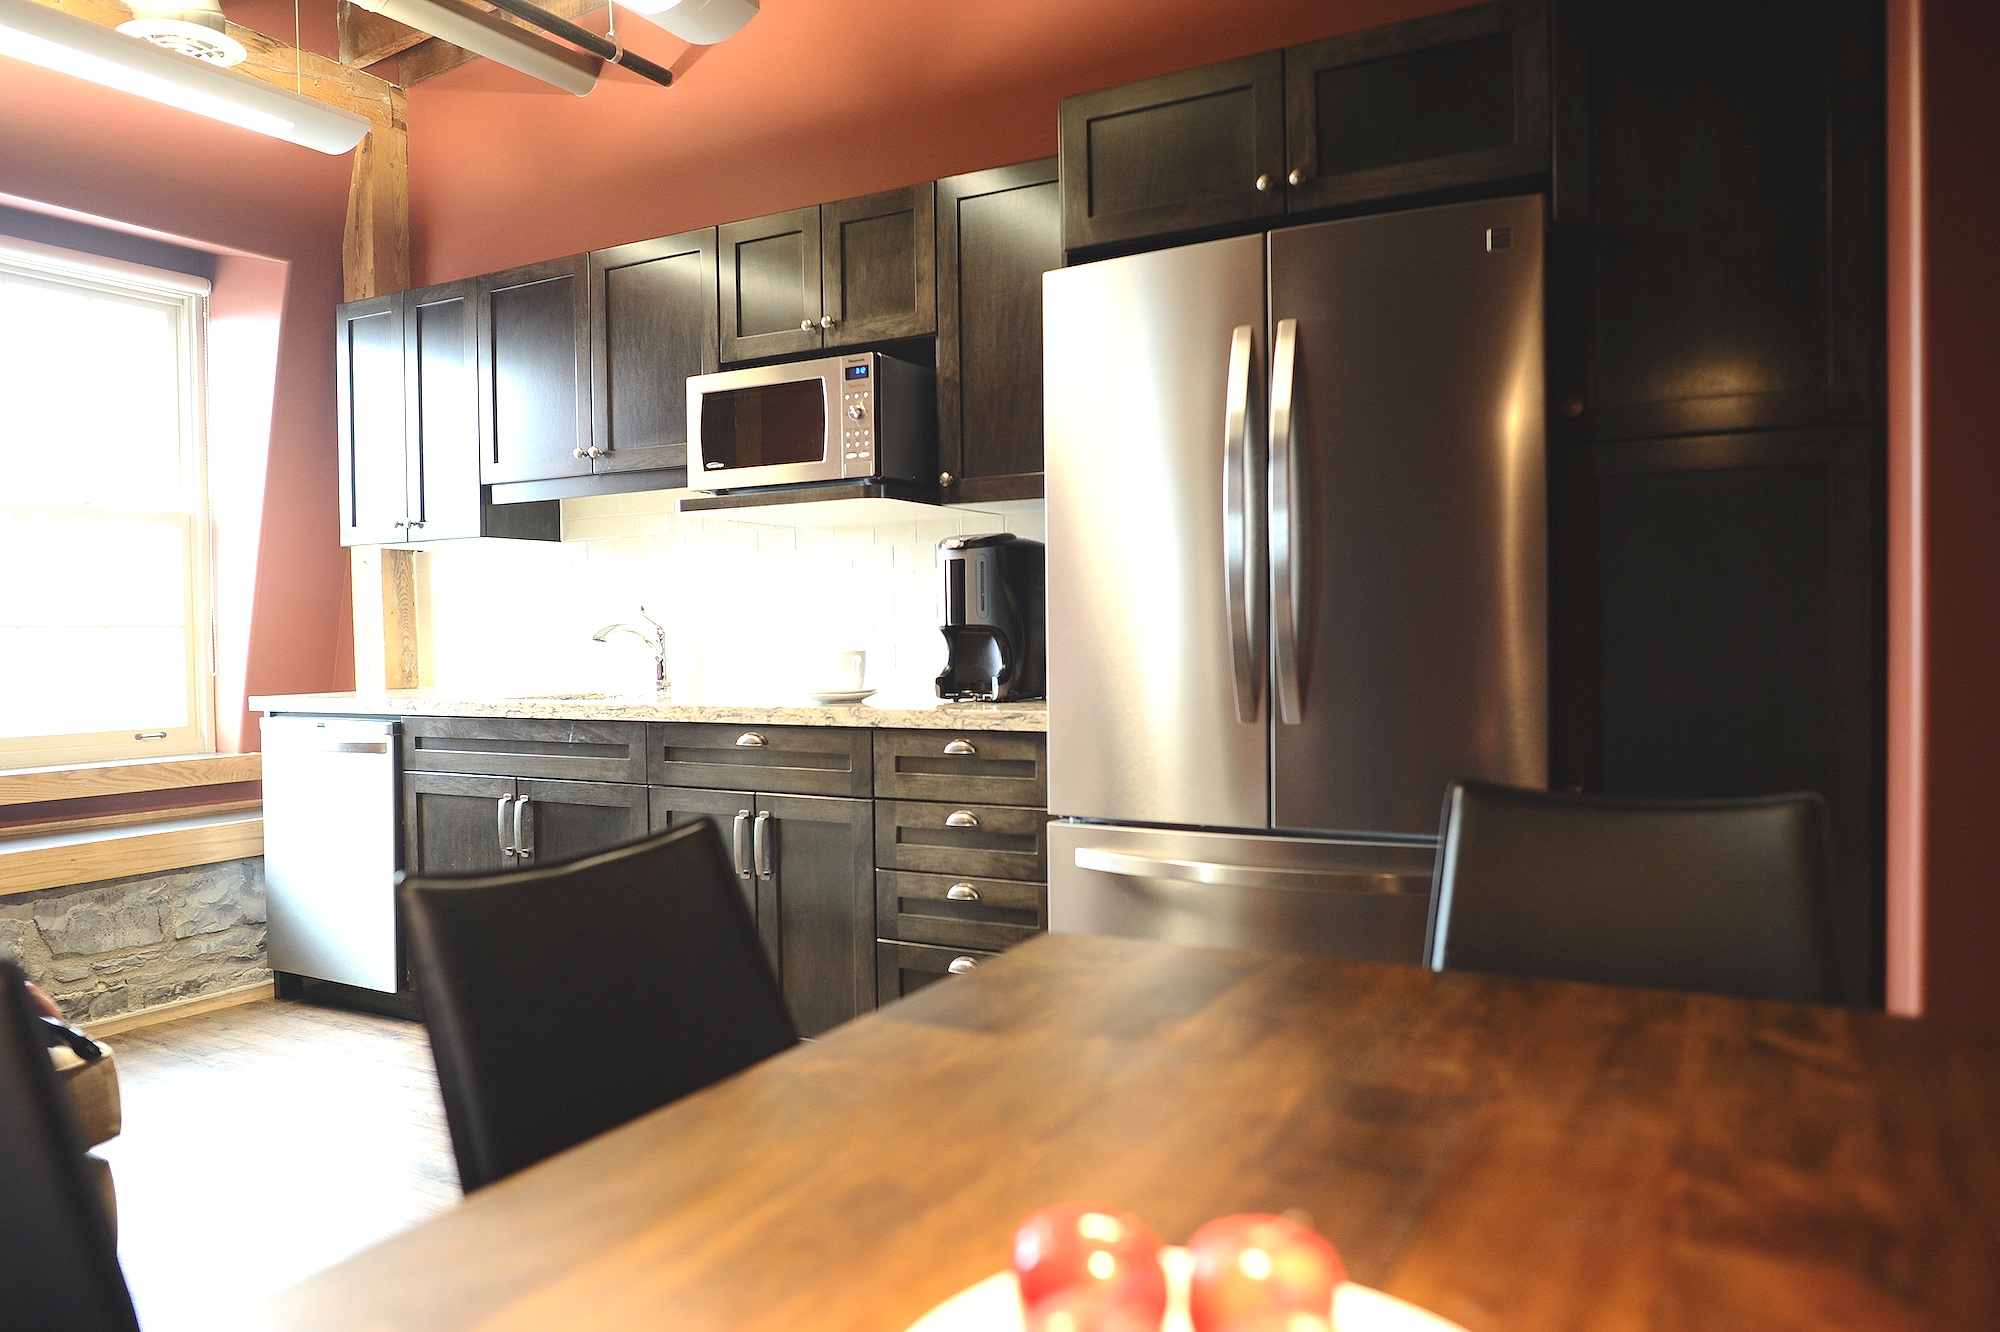 8 Office Kitchen Cabinetry.JPG